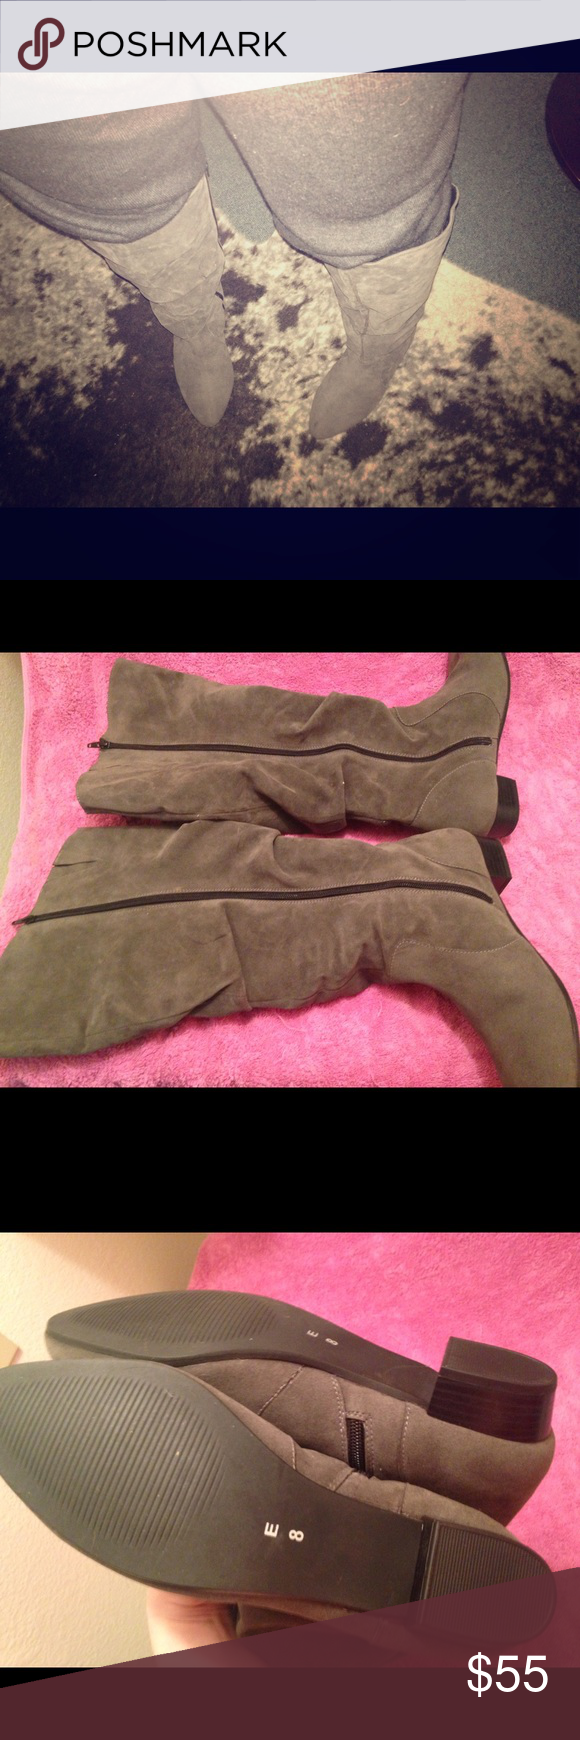 Simply be extra wide calf boots grey suede 10 I had these imported from simply be in England they are very wide calf I've never worn as they are too wide for me. Stamped sz 8 on bottom but inside says U.S. sz 10. I'm a us 10 and they are true to size. They are vegan faux suede in a mid grey.  Brand is legroom and it's their high leg boot wide foot super e curvy calf model. E curvy is for 19 3/4 width calves. Elastic insets at tops for comfort, full zipper for easy putting on. They have a…